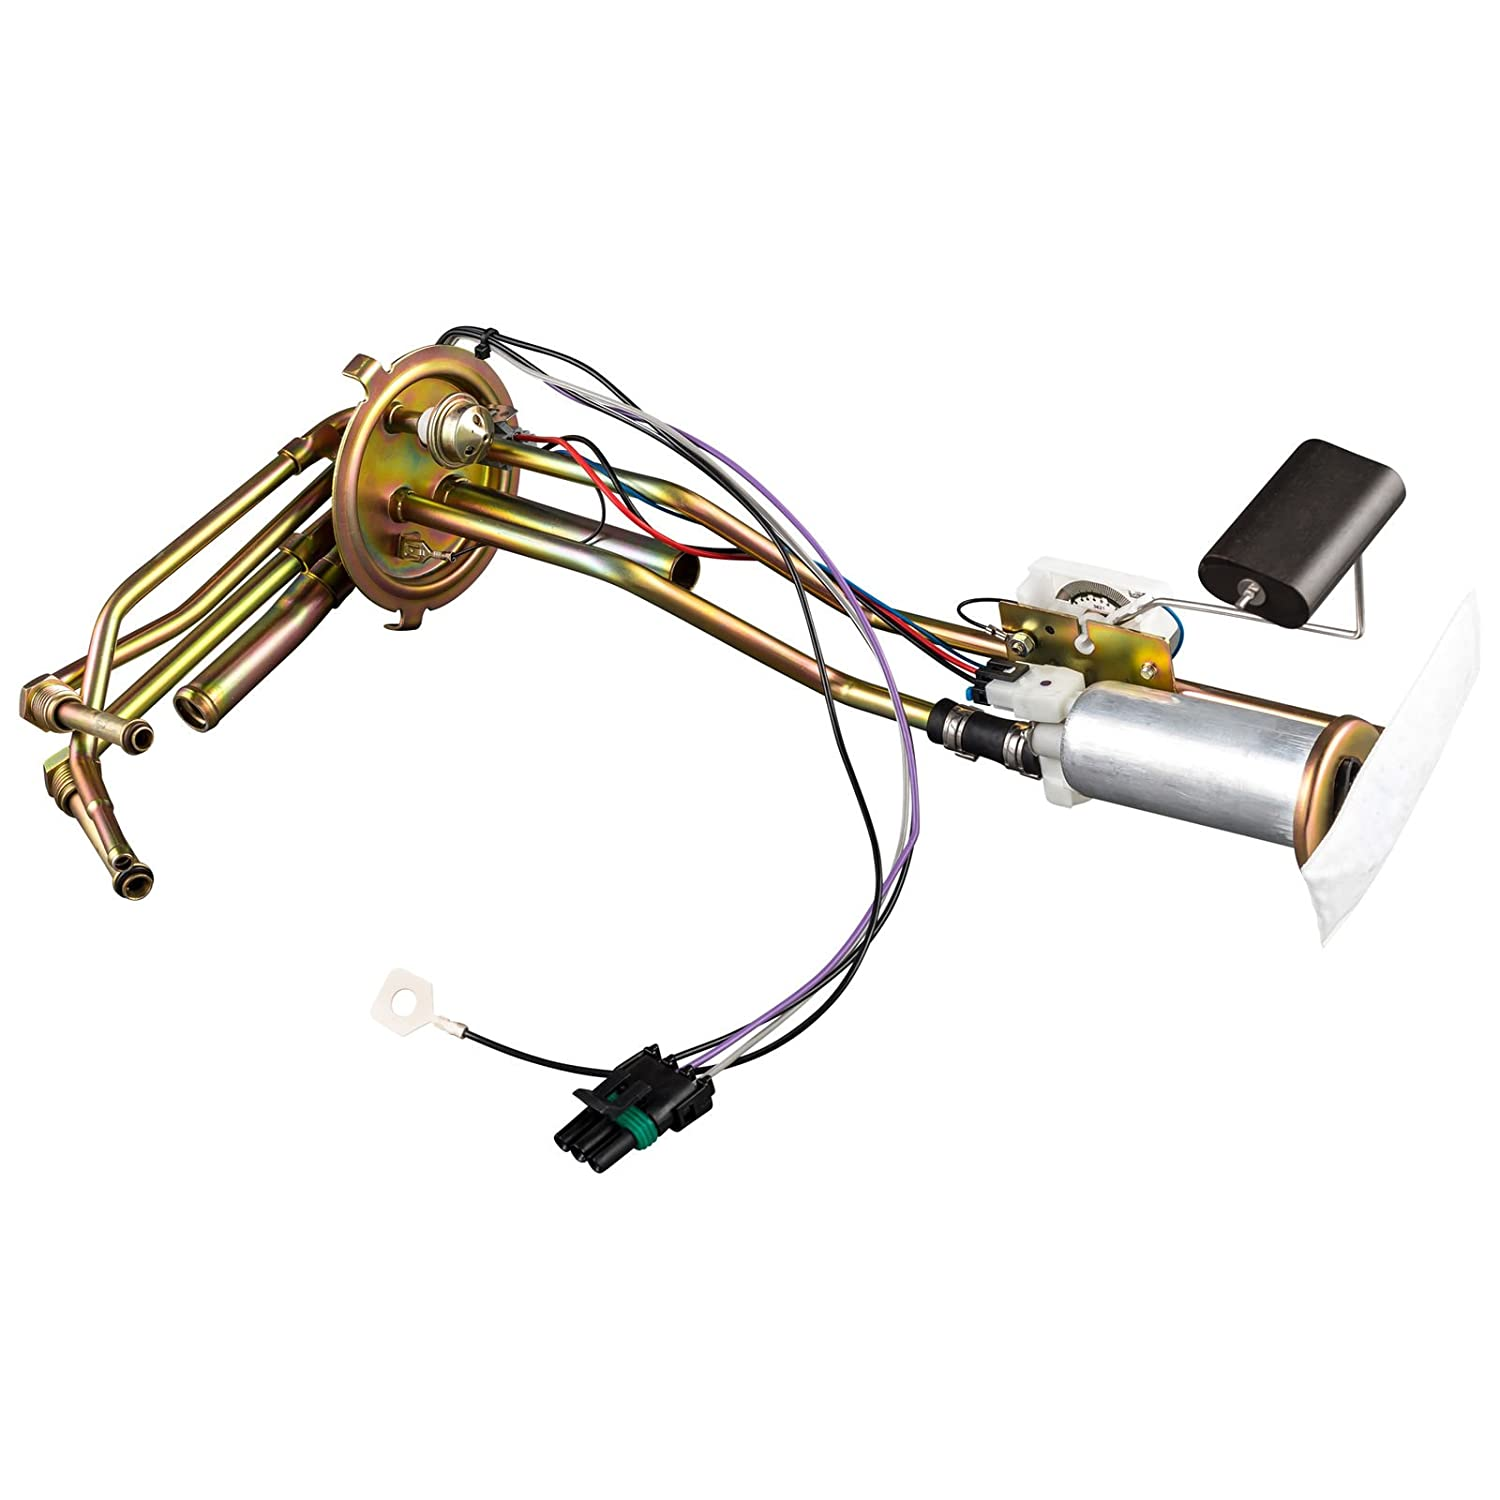 Amazon.com: Fuel Pump & Sending Unit for 88-95 C/K 1500 2500 3500 Pickup  Truck fits E3621S: Automotive